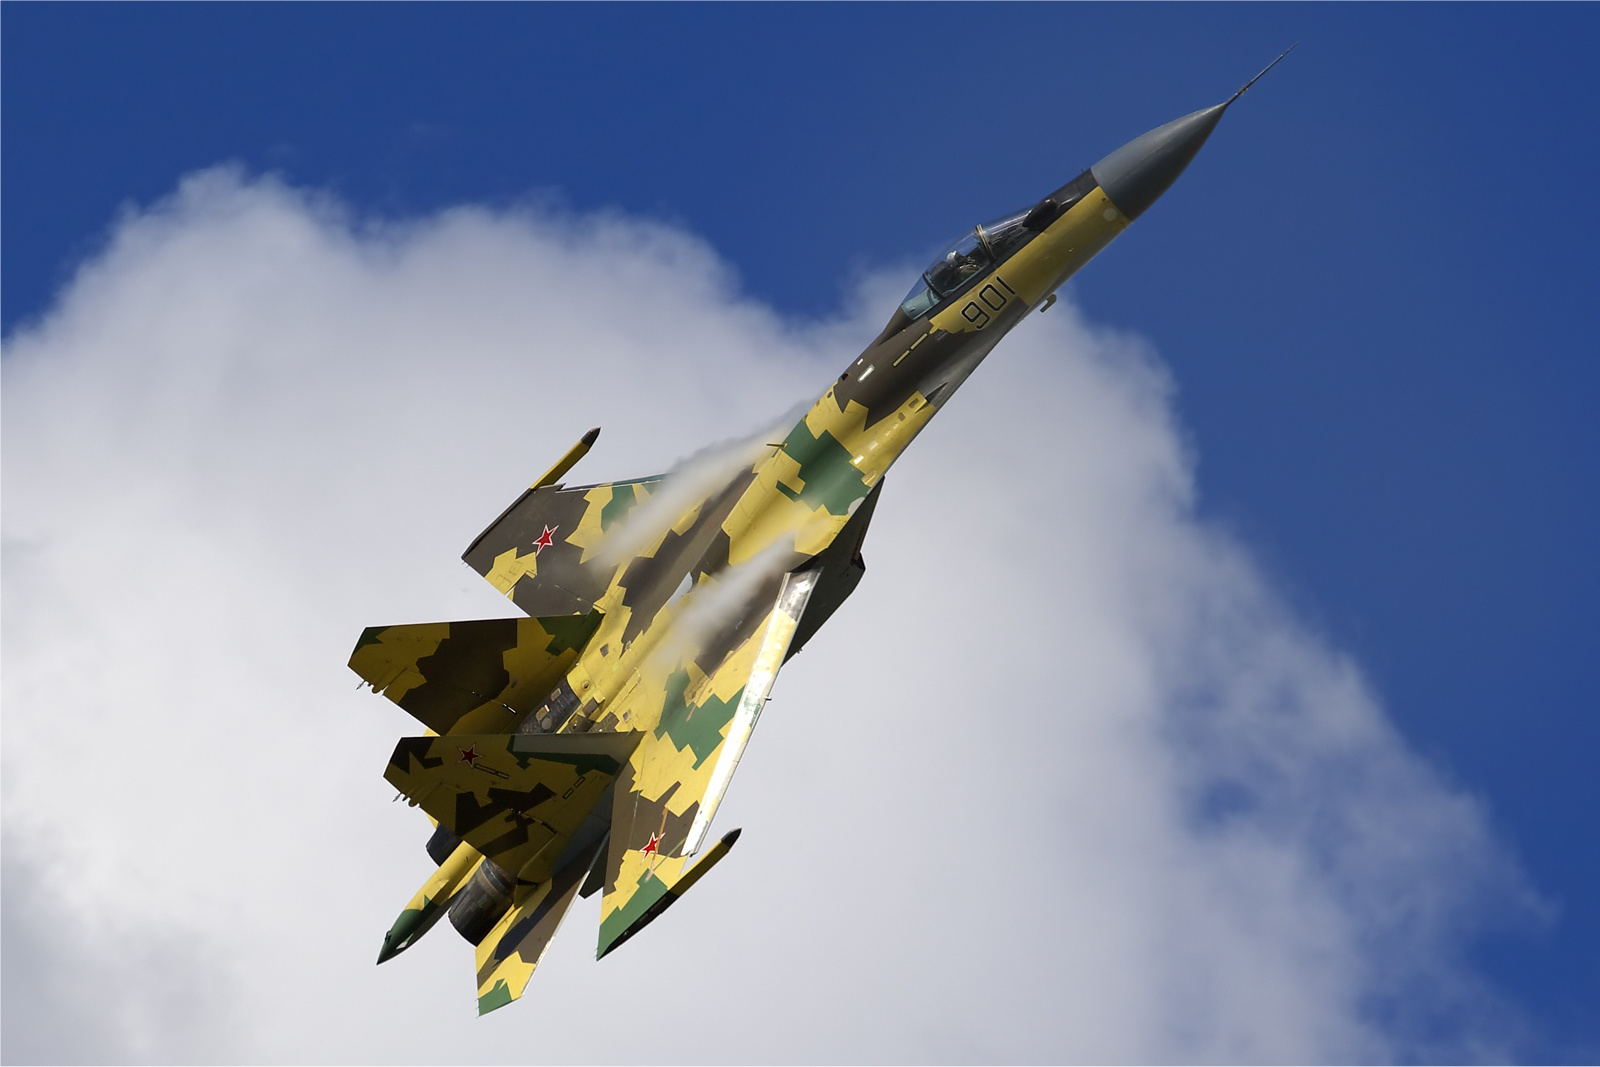 military picture sukhoi su - photo #22